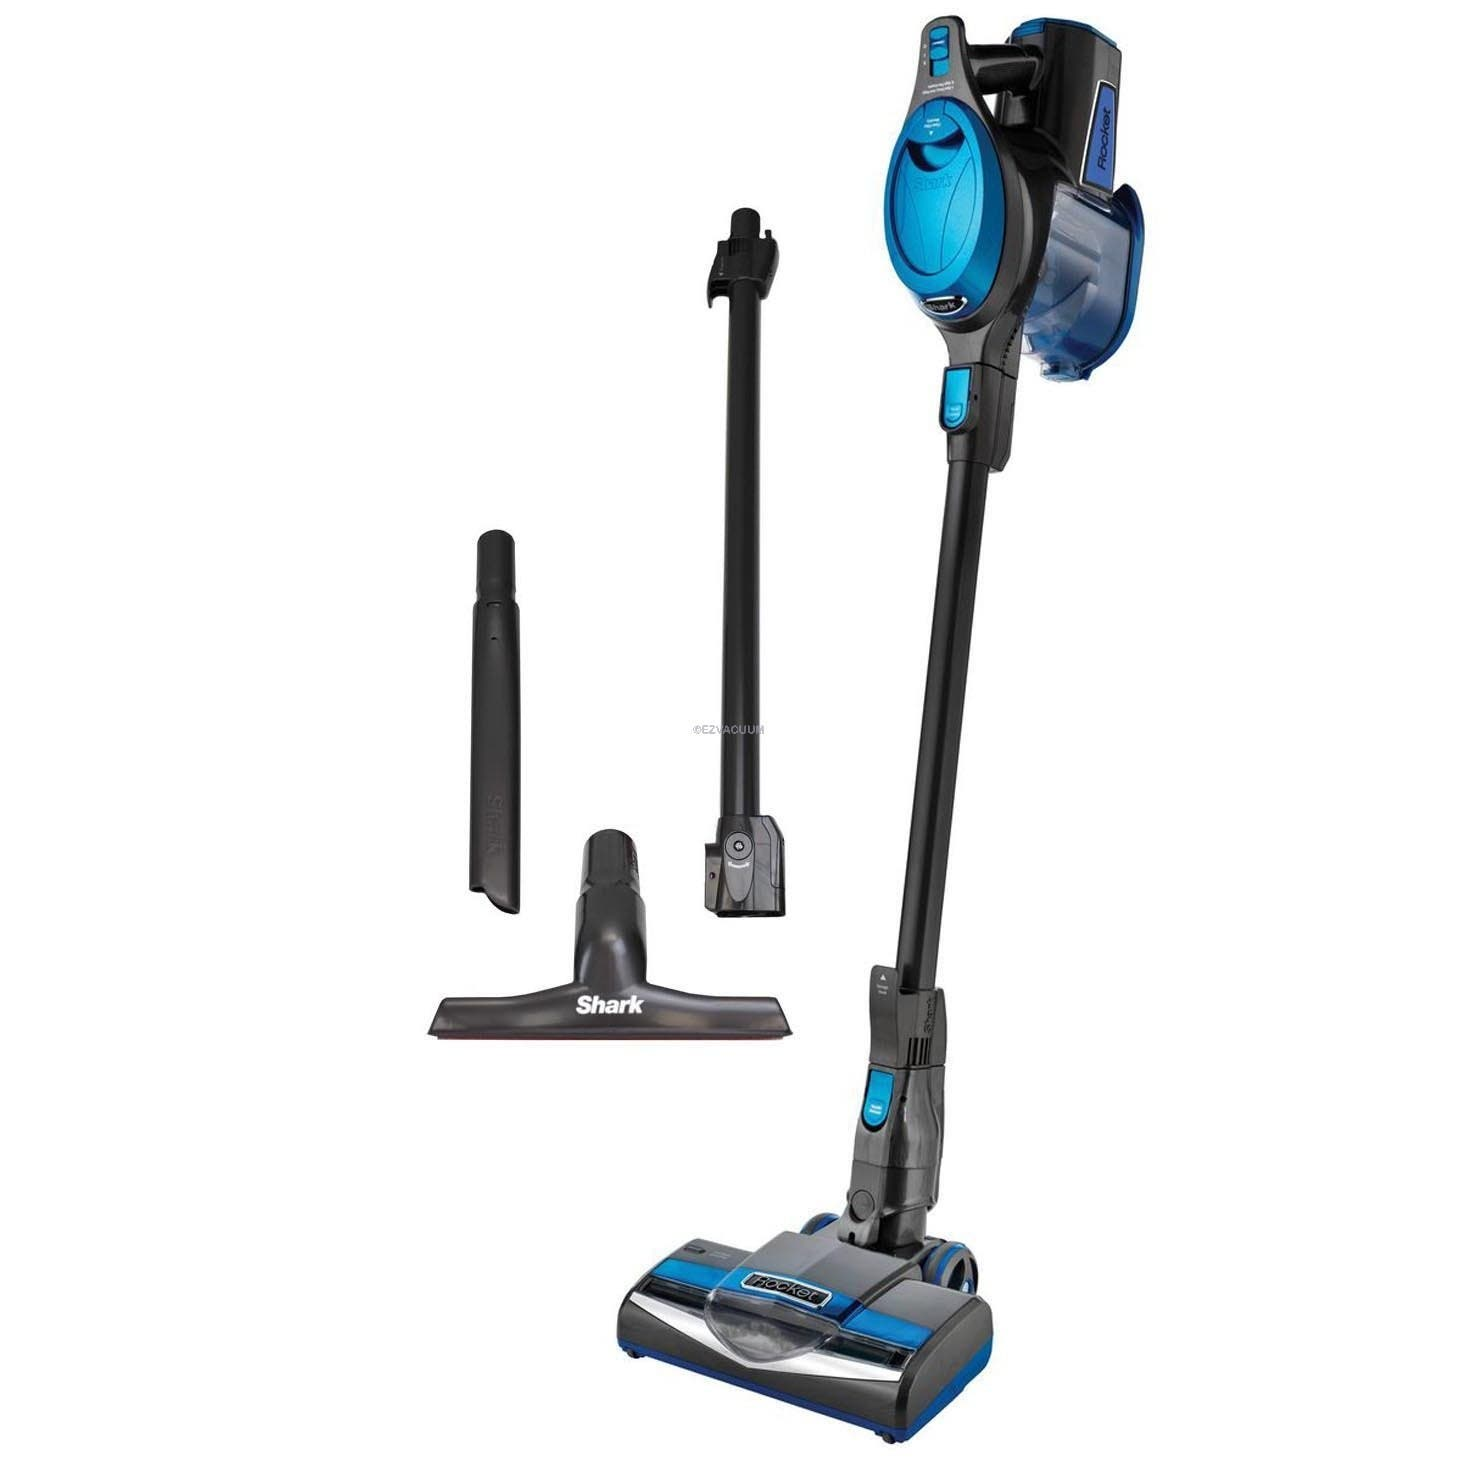 Shark Rocket Deluxe Pro Ultra-light Corded Vacuum, Teal HV300 (Certified Refurbished)